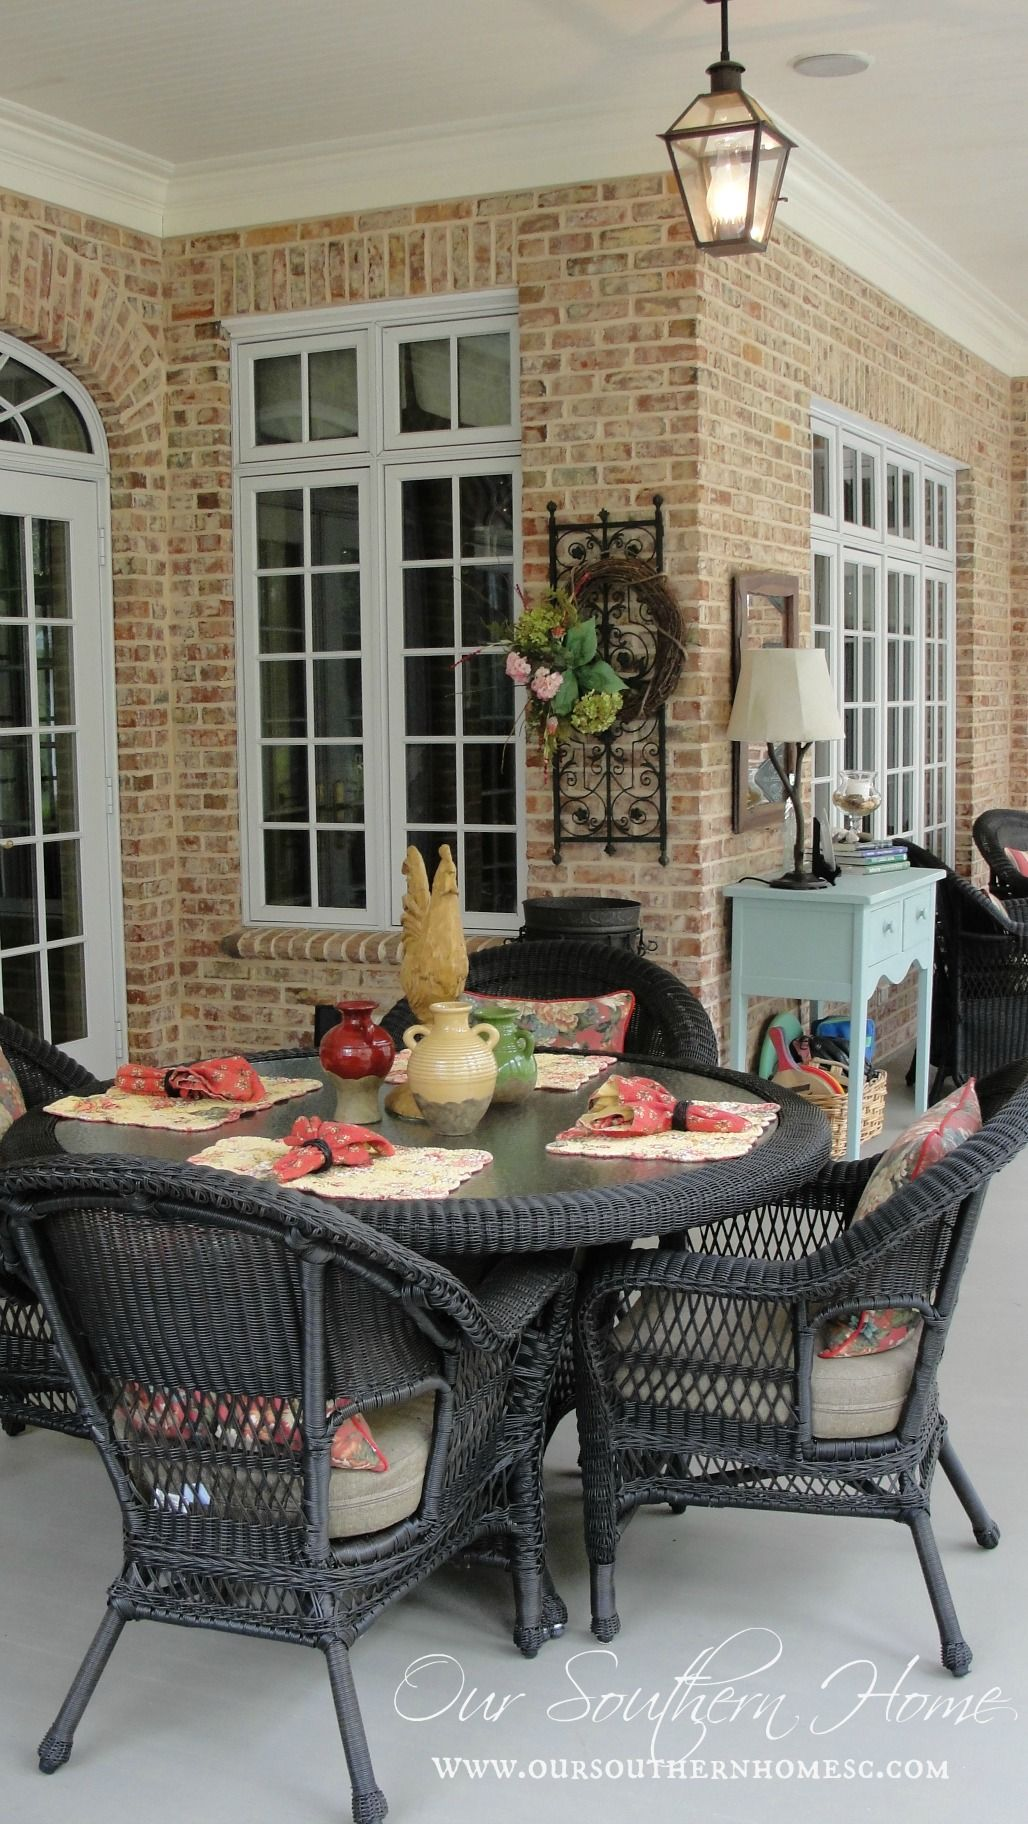 Living Room Southern Home Decorating 1000 images about patio sets outdoor decor on pinterest flyers and target canada